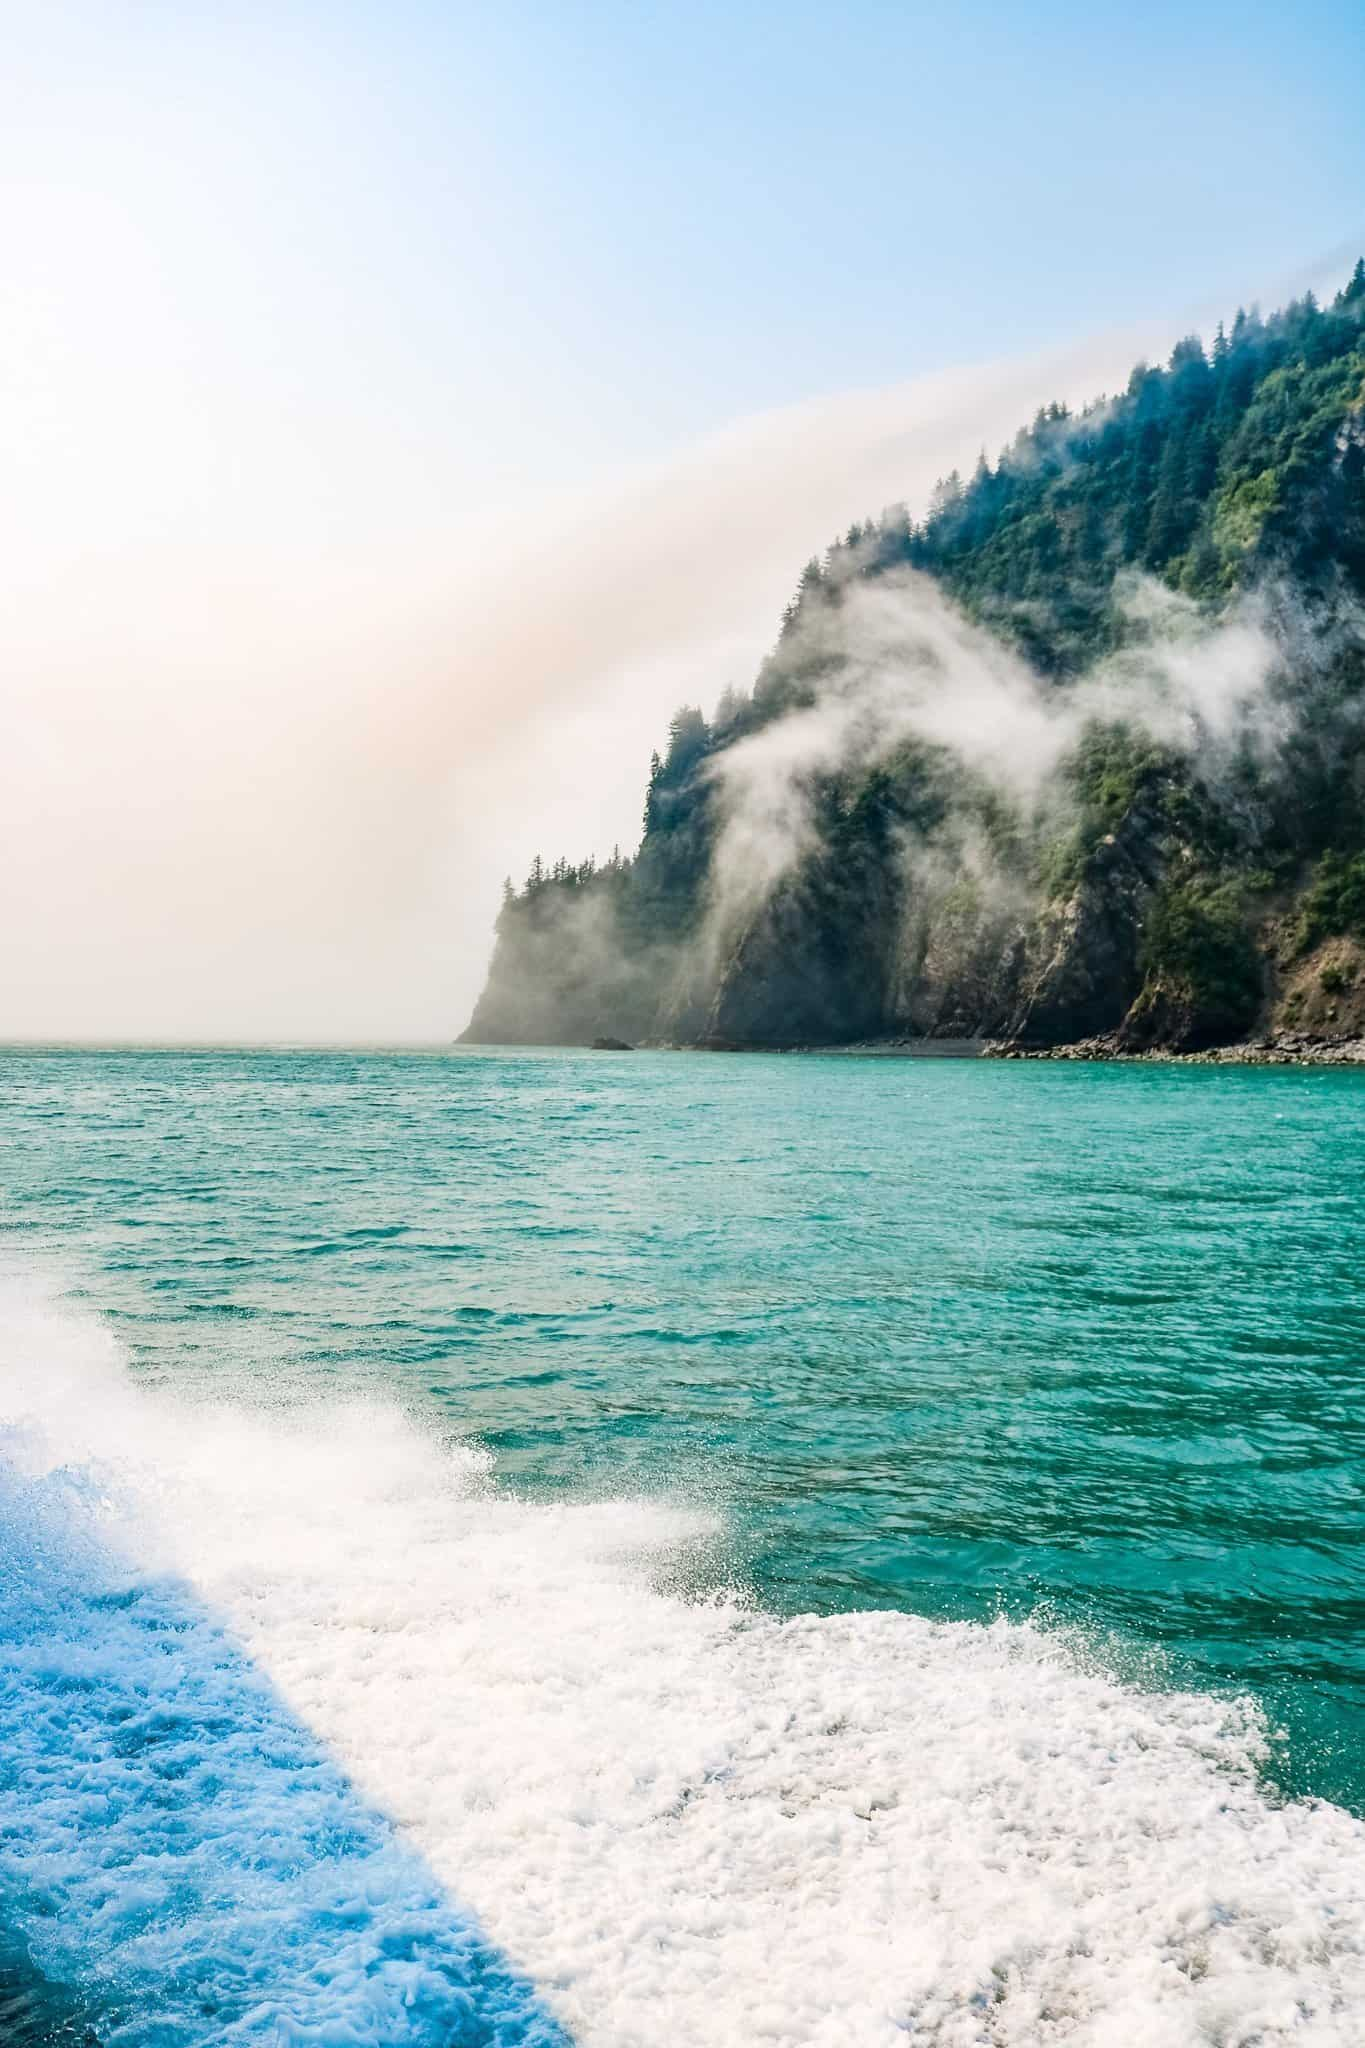 Lifting Fog at Kenai Fjord Alaska - The Next Trip